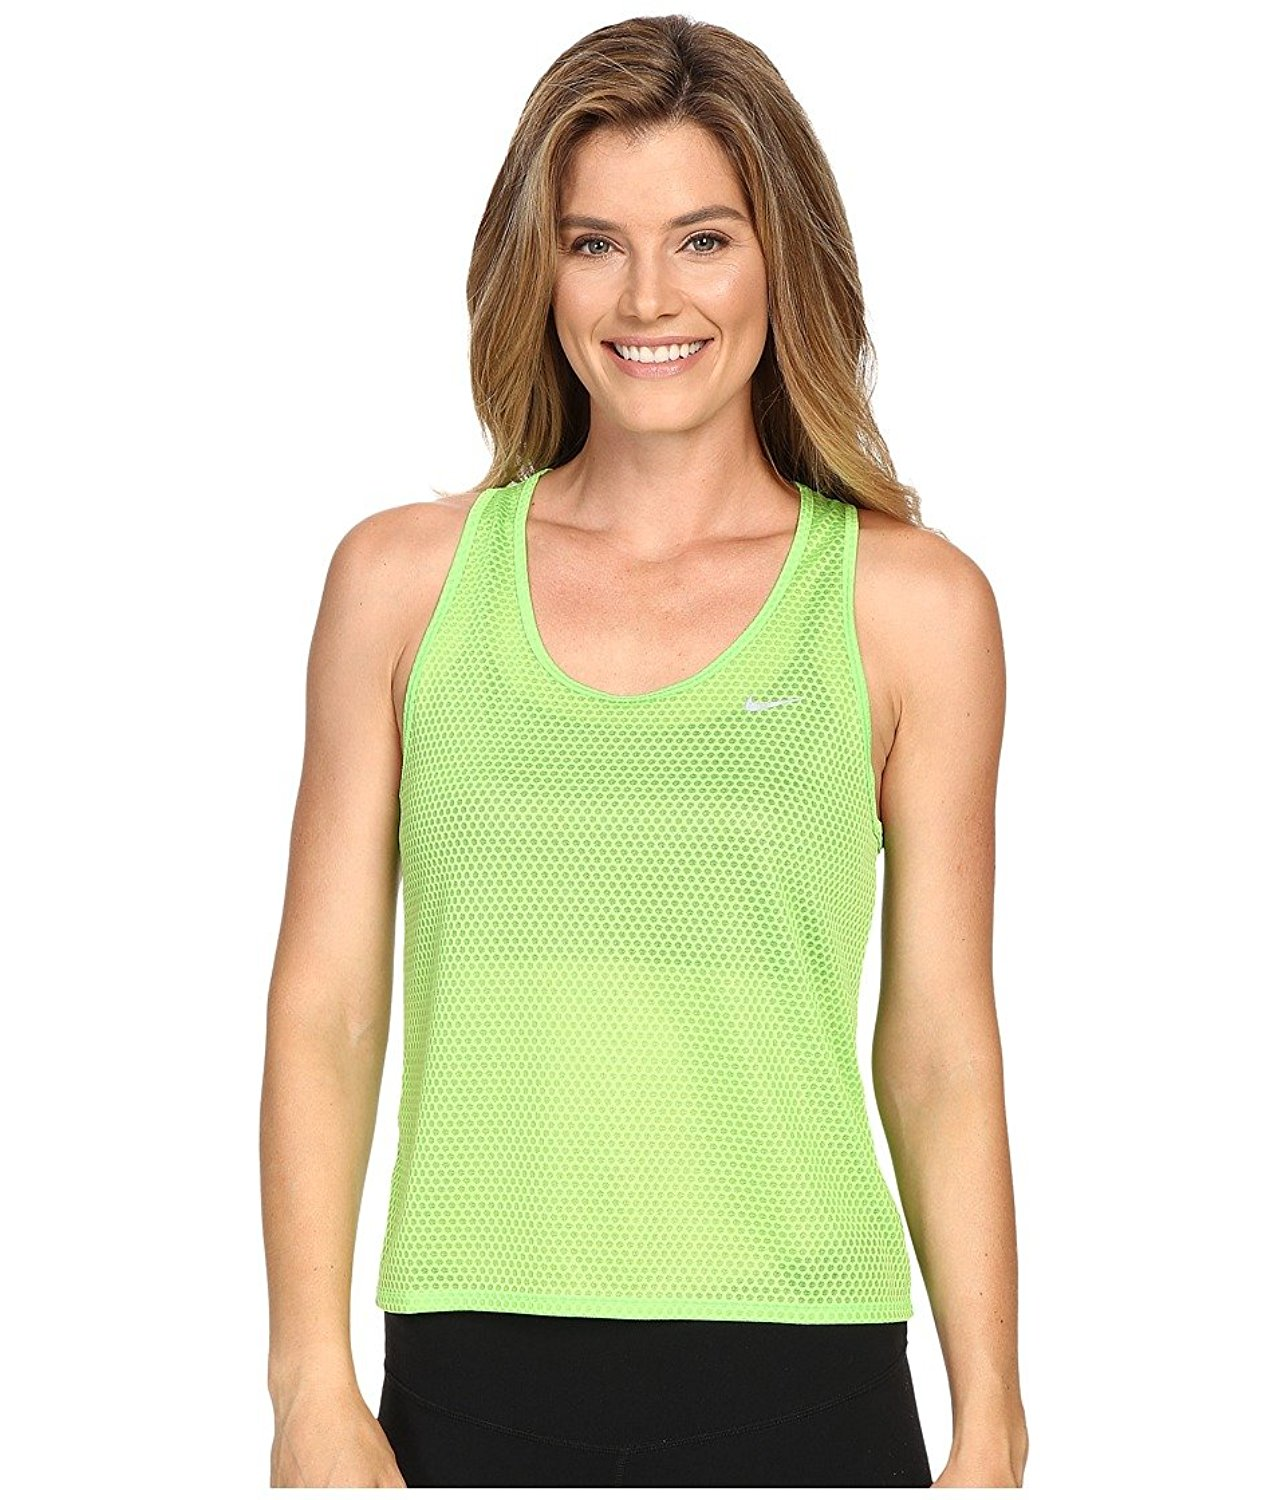 1987c1dfa160 Get Quotations · Nike Women s Run Fast Tank Top Action Green Reflective  Silver Tank Top MD